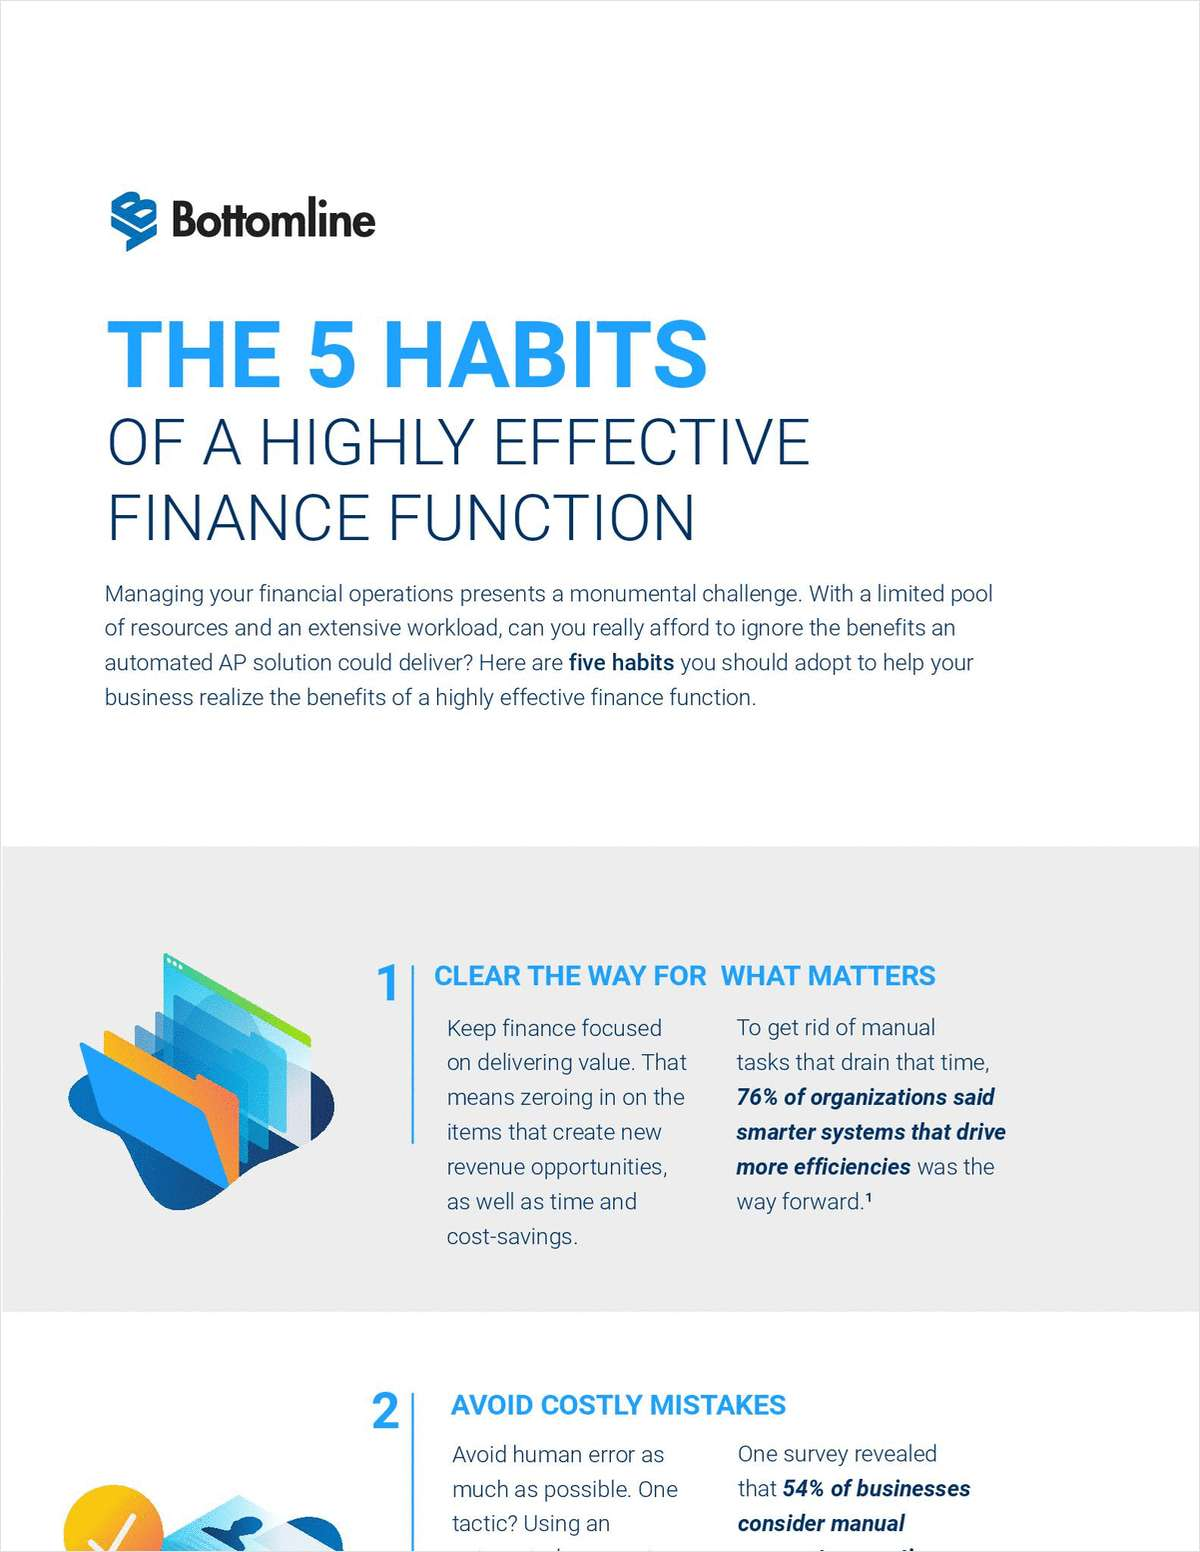 The 5 Habits of a Highly Effective Finance Function